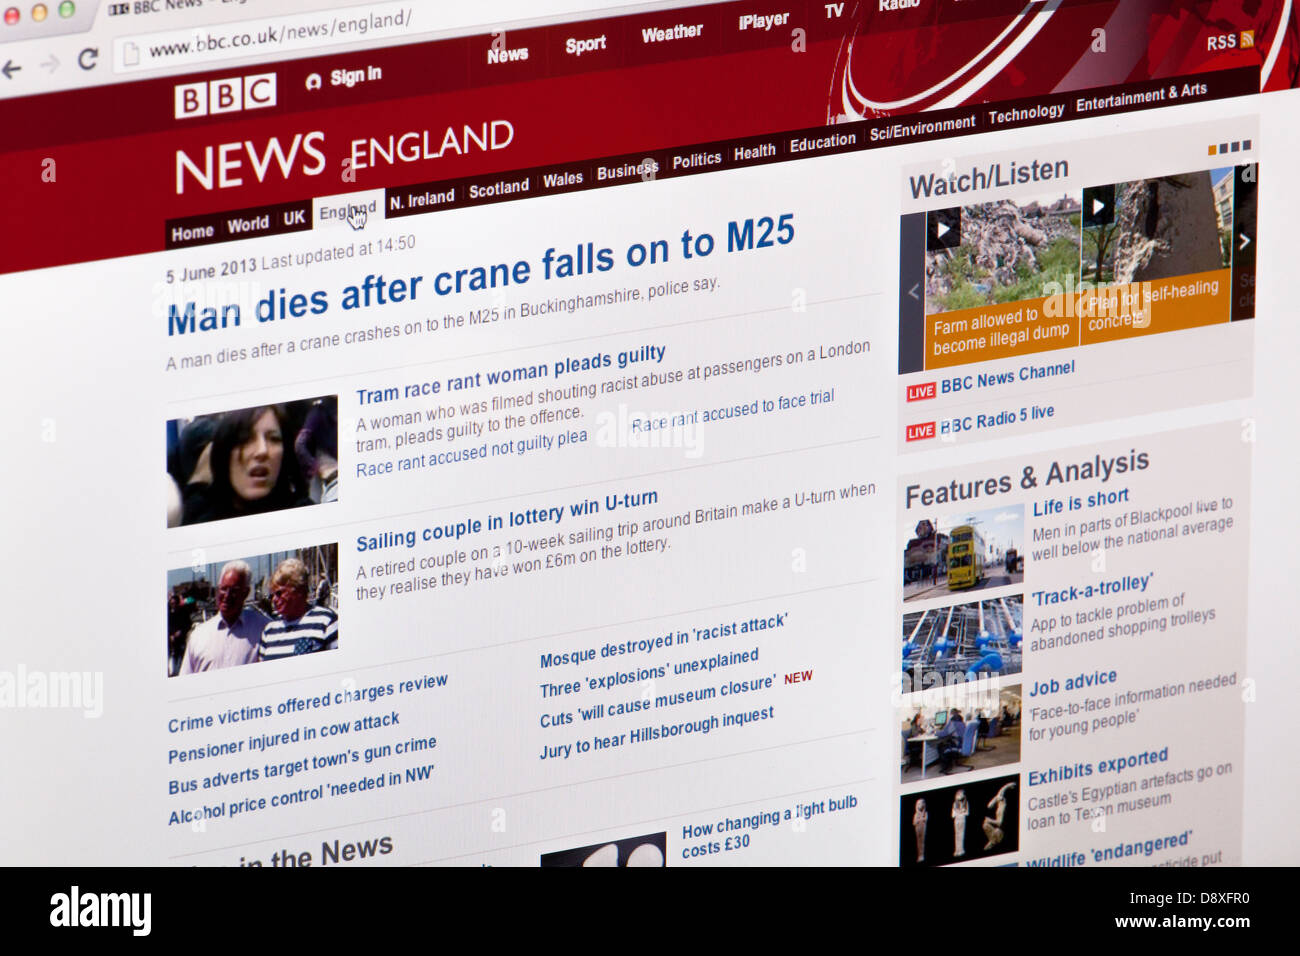 BBC news England Website or web page on a laptop screen or computer monitor - Stock Image